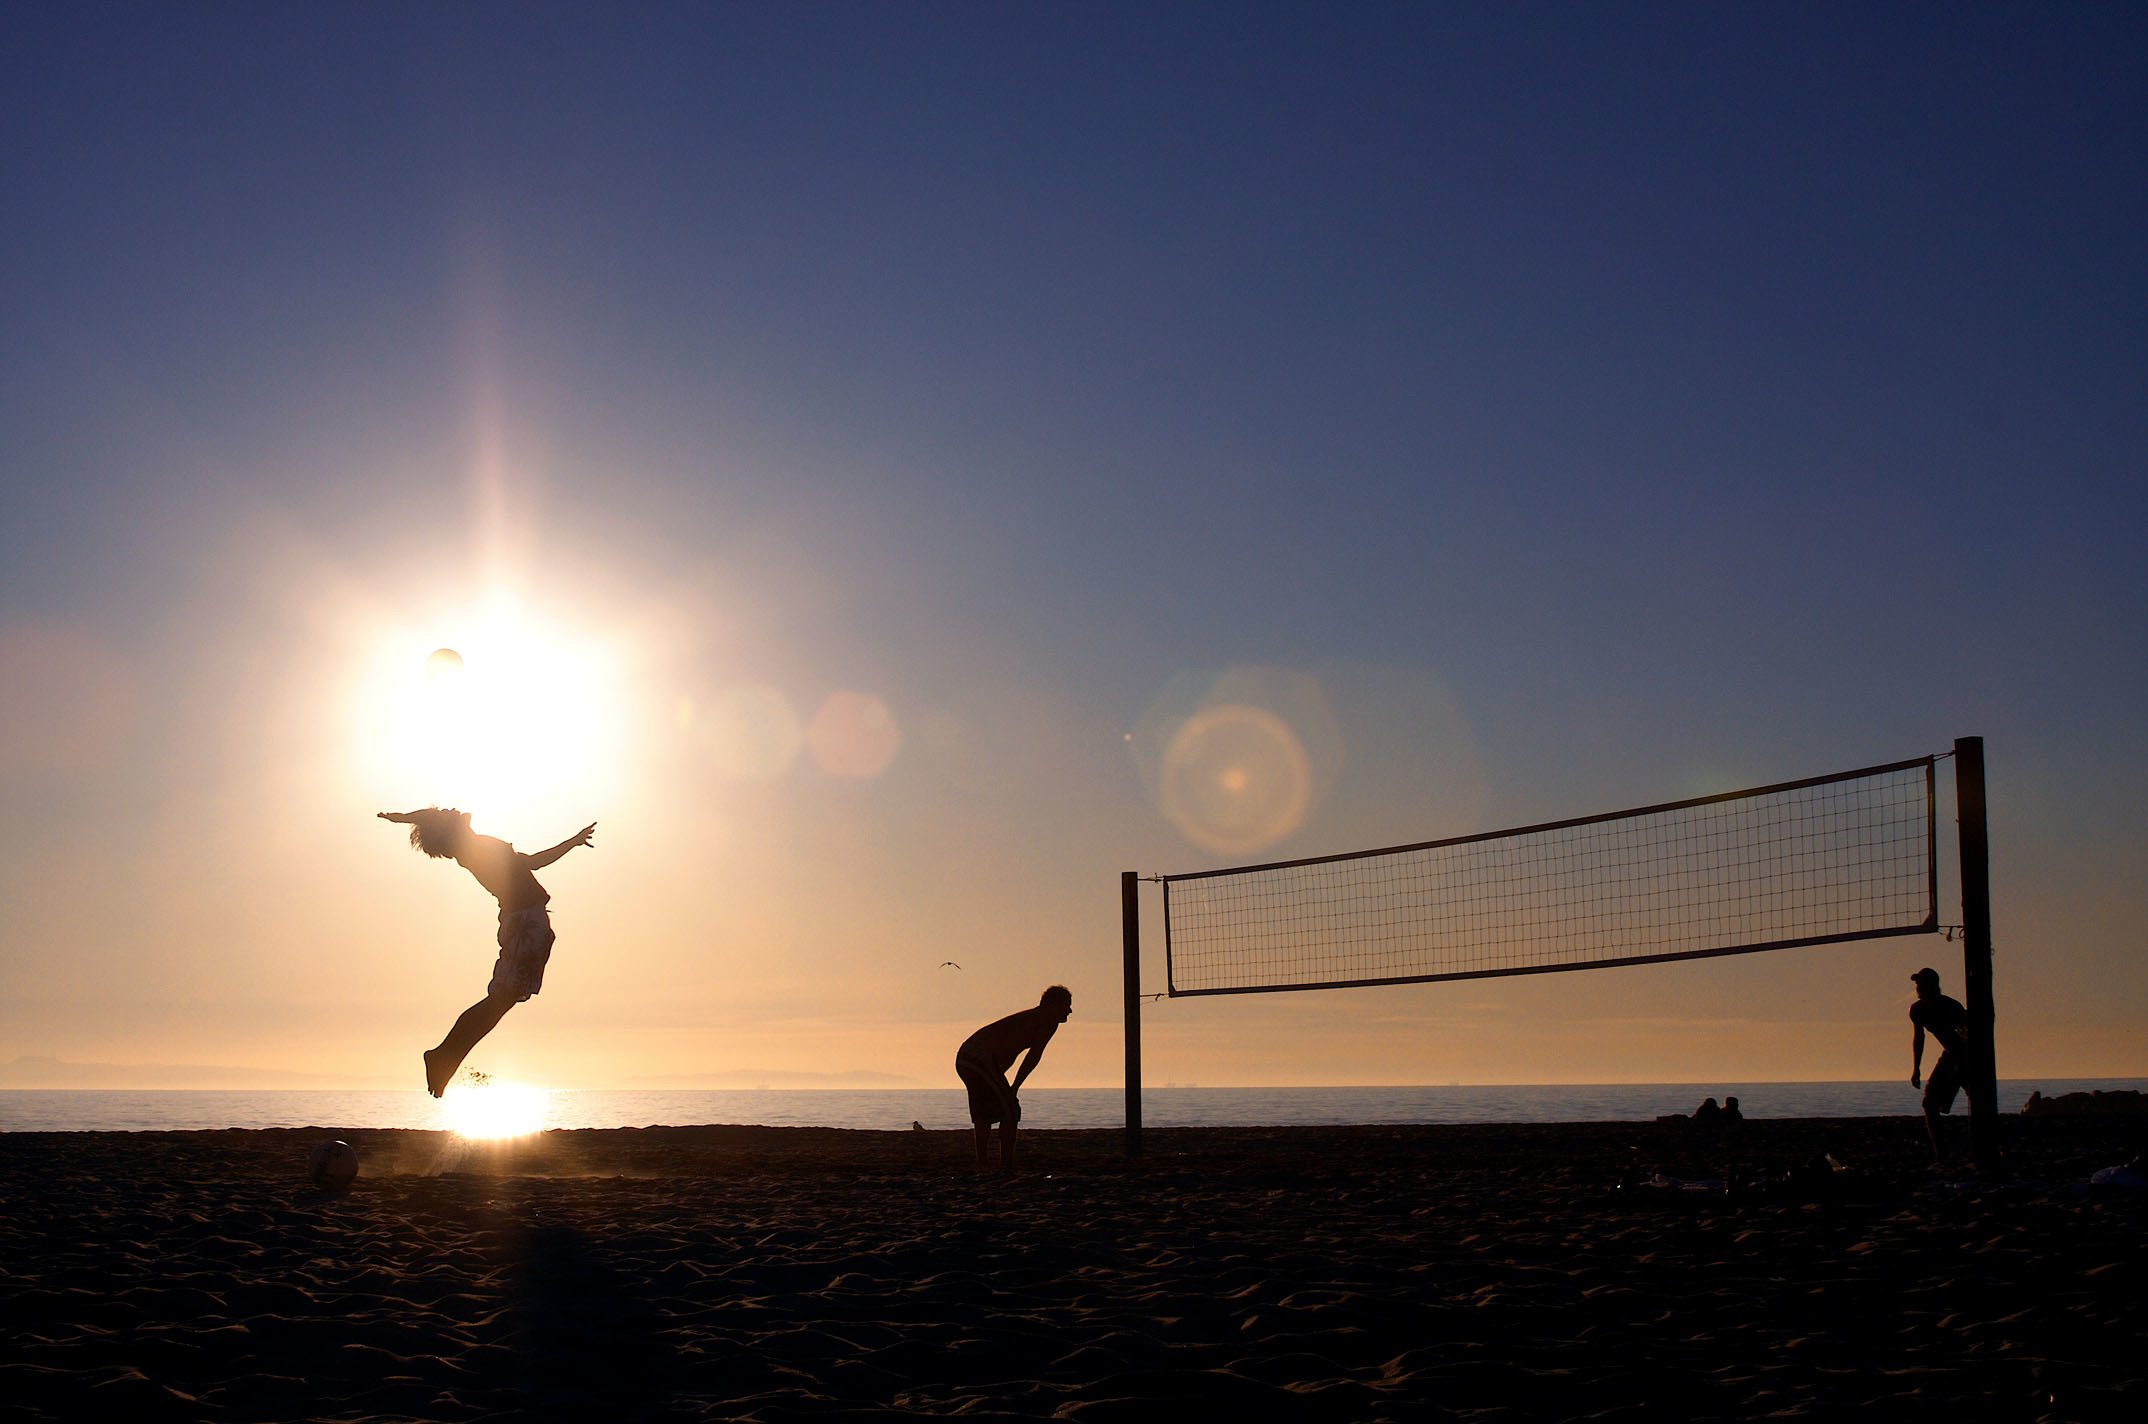 2148x1424 Beach Volleyball HD Wallpapers - THIS Wallpaper | Adorable Wallpapers |  Pinterest | Beach volleyball, Volleyball and Wallpaper